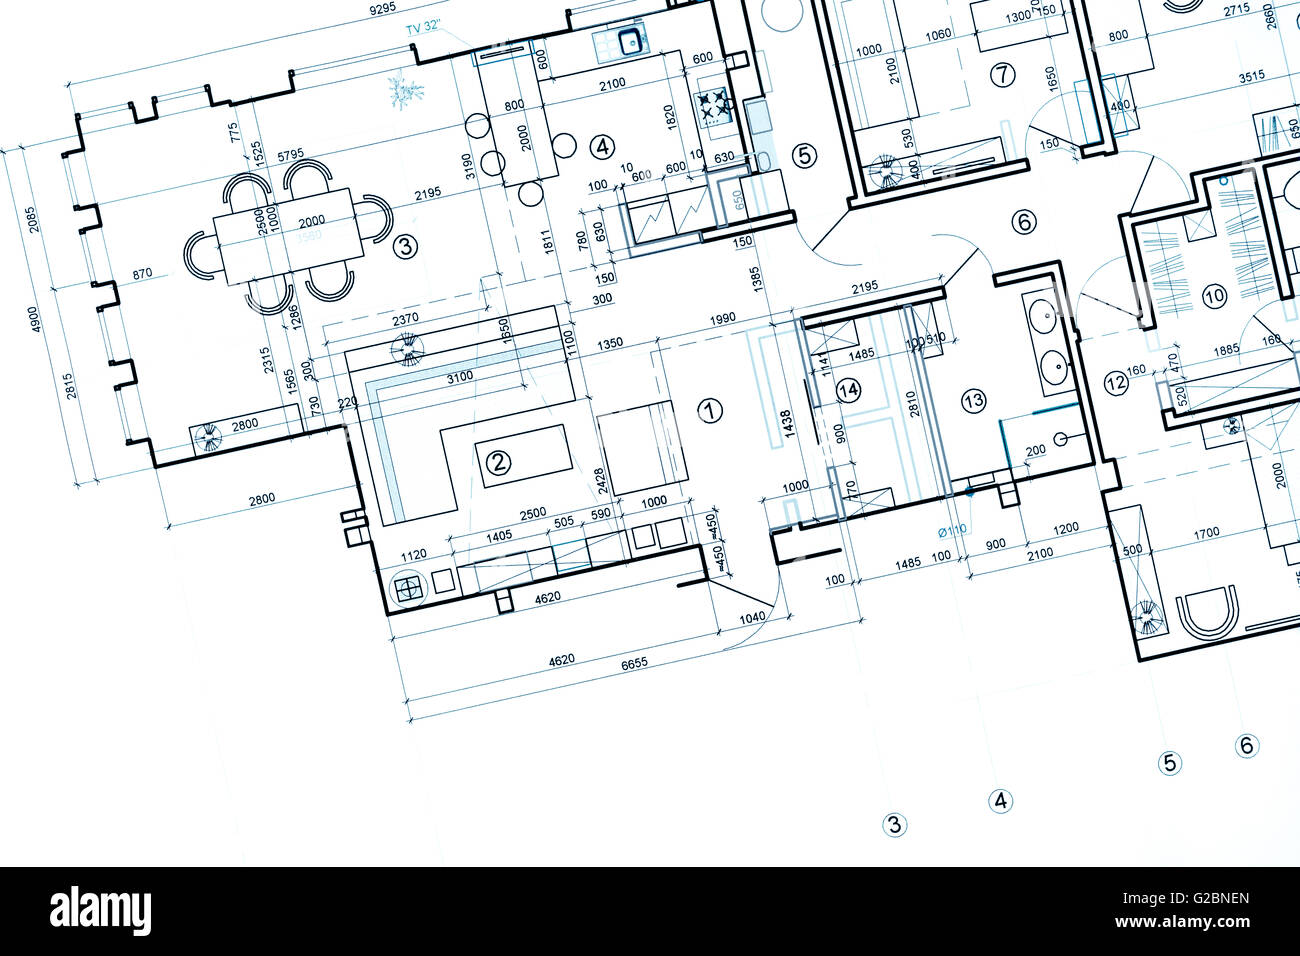 Draw floor plan step 8 architectural drawings of houses stock photo blueprint floor plans architectural drawings construction background malvernweather Choice Image